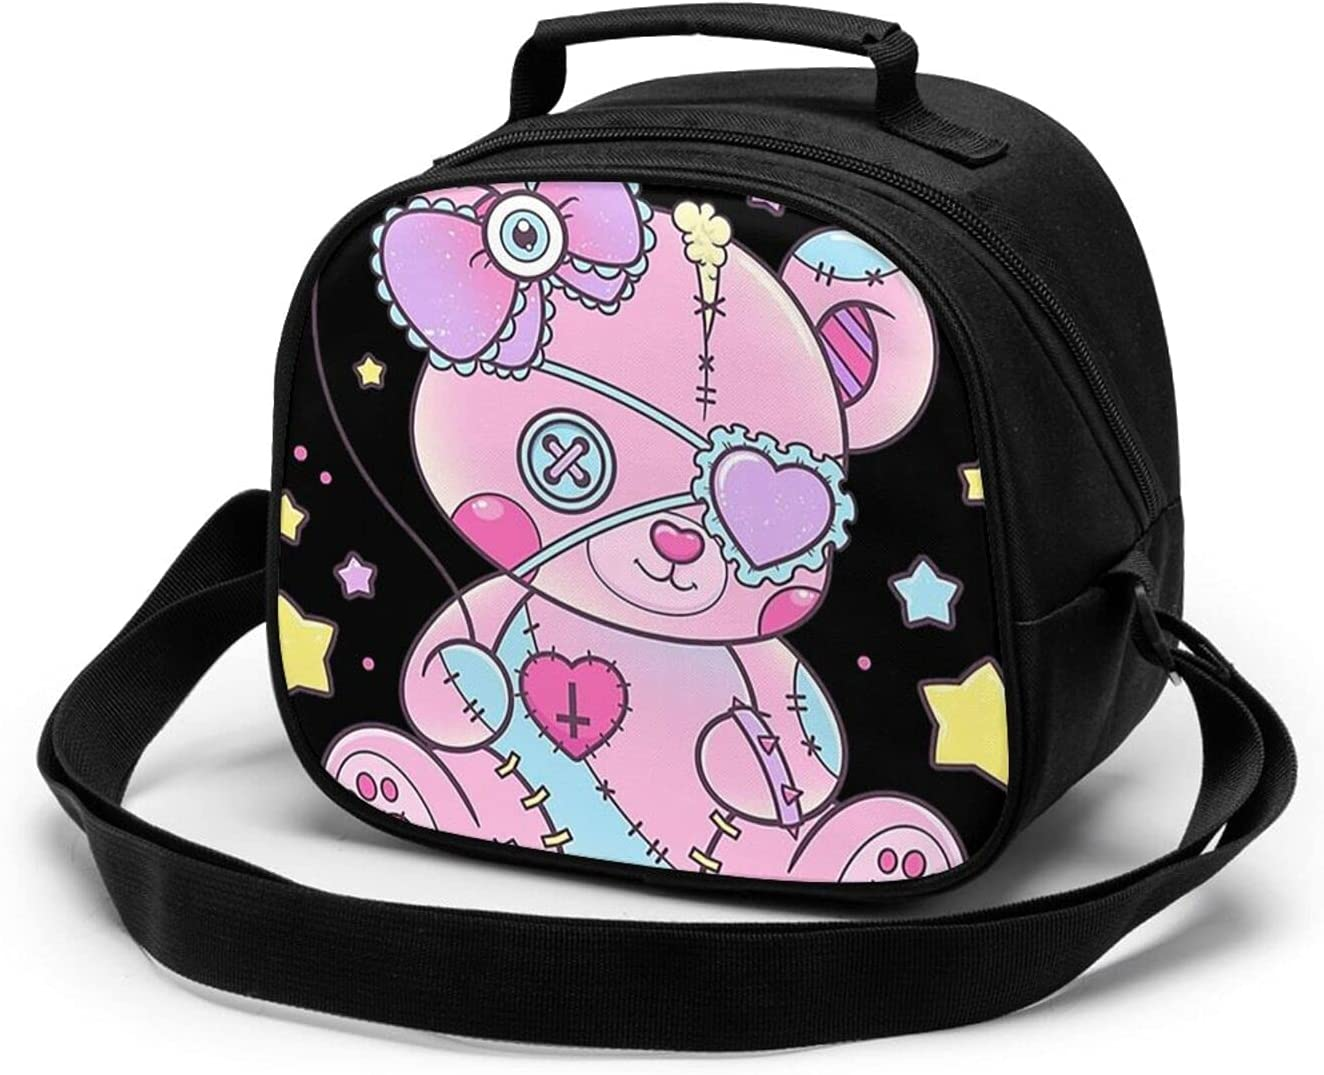 Pastel Goth Children's Lunch Sale Bag Girls Boys OFFicial shop and Reusable B